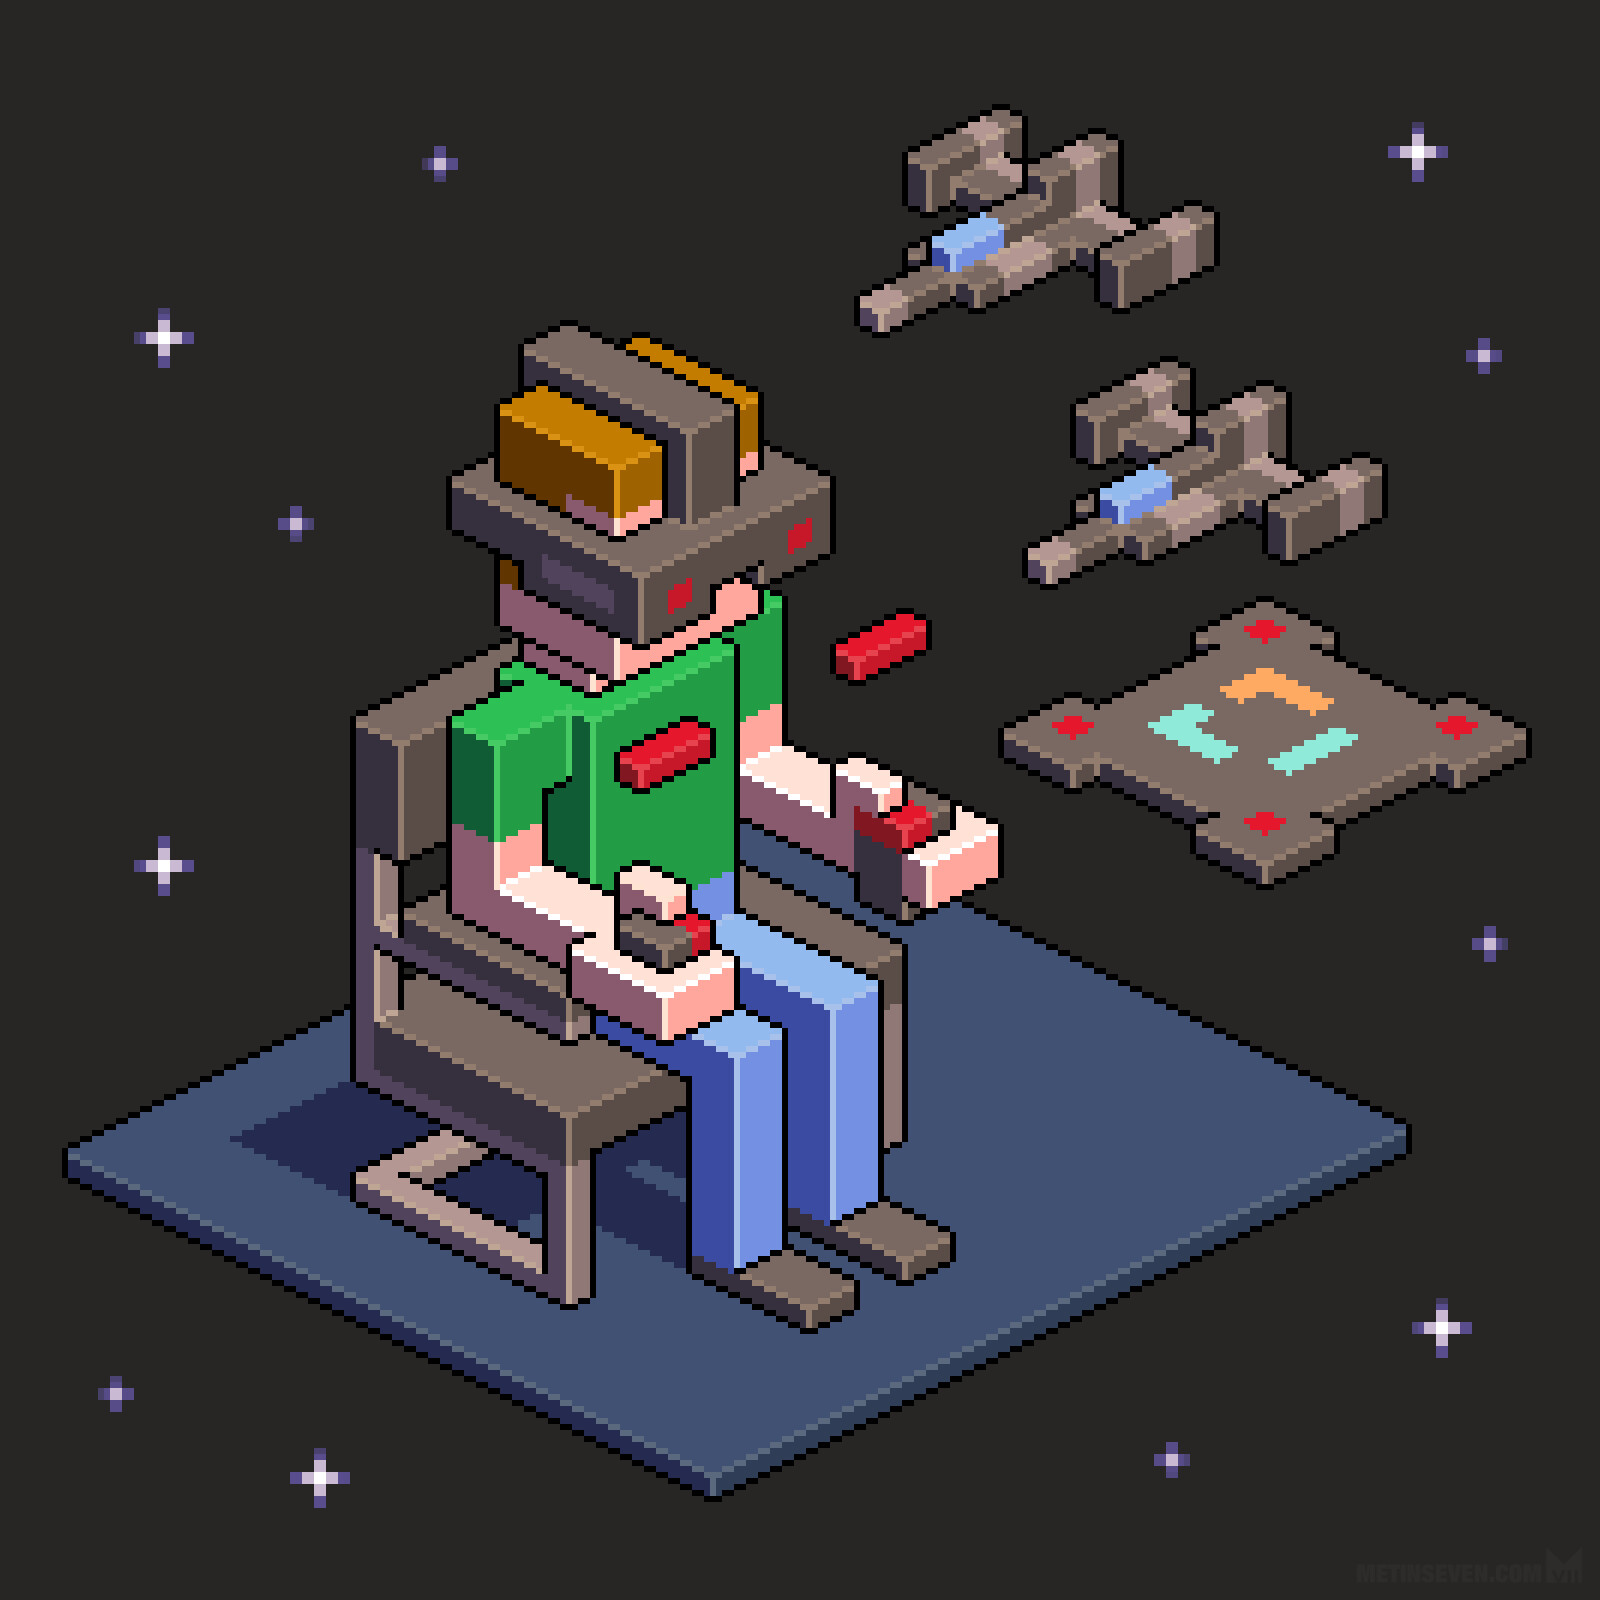 Isometric pixel illustration about virtual reality, for an EclecticIQ sticker series